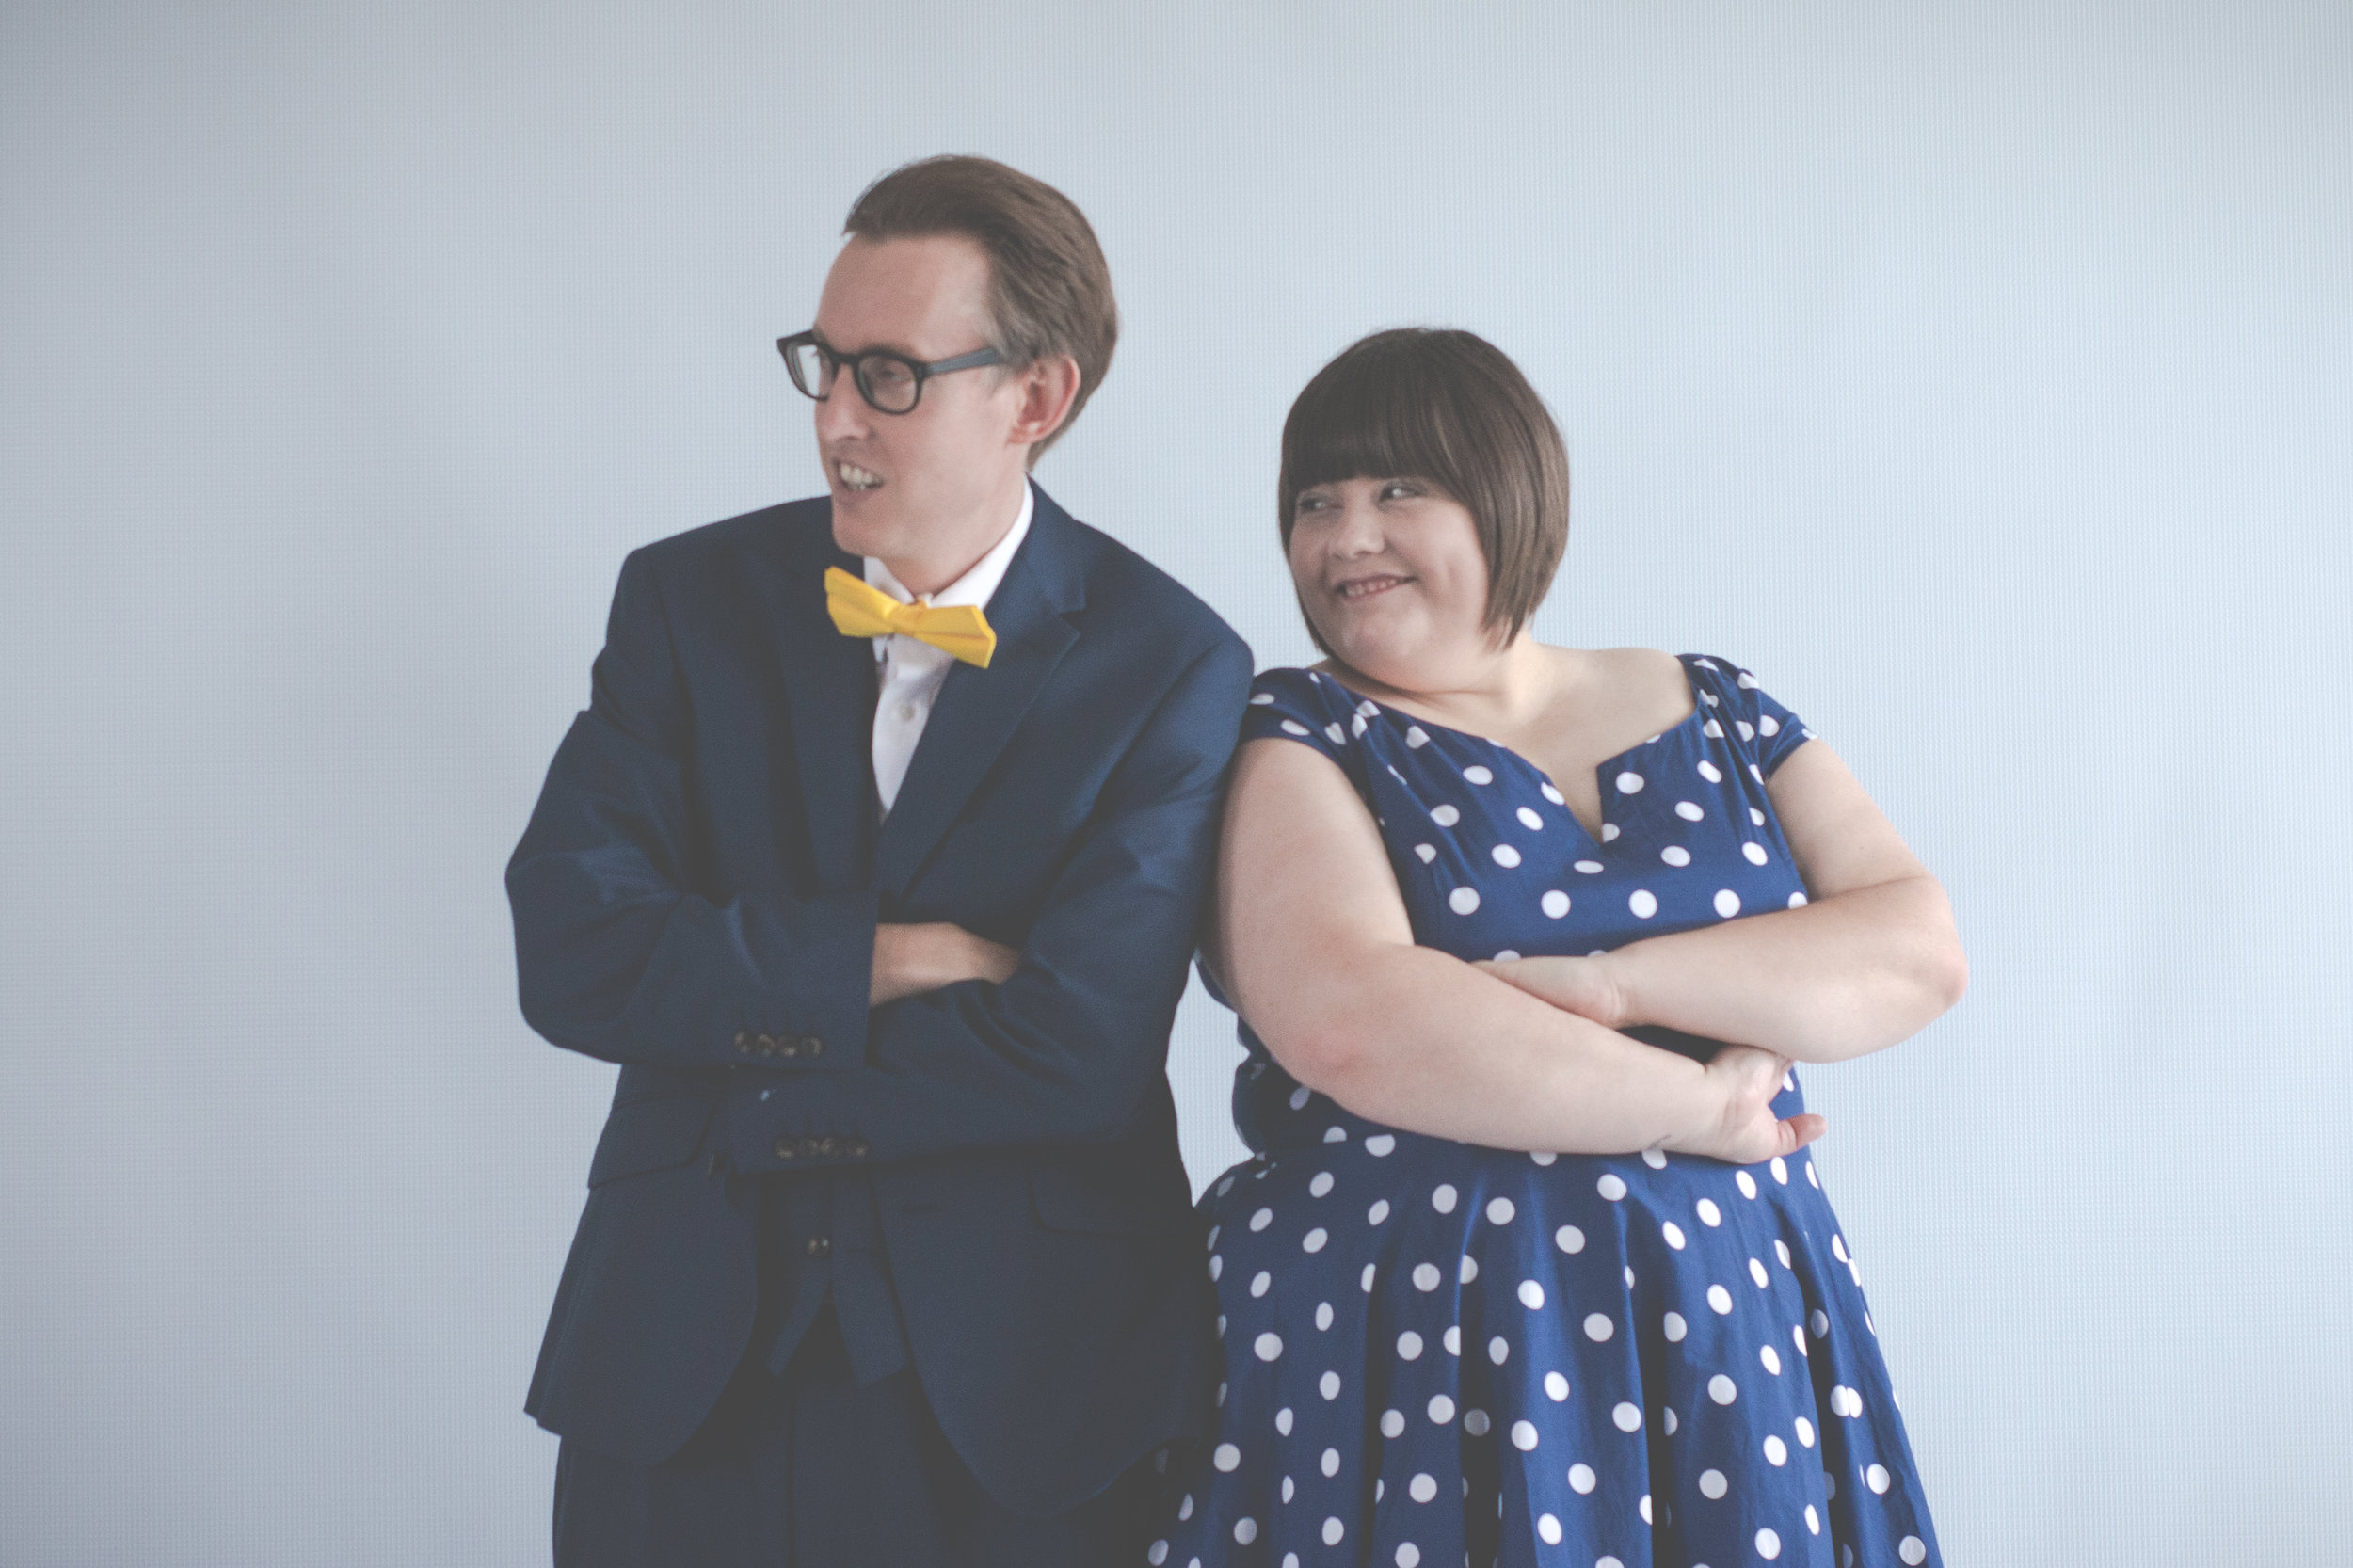 couples-photoshoot-keighley-bradford-06